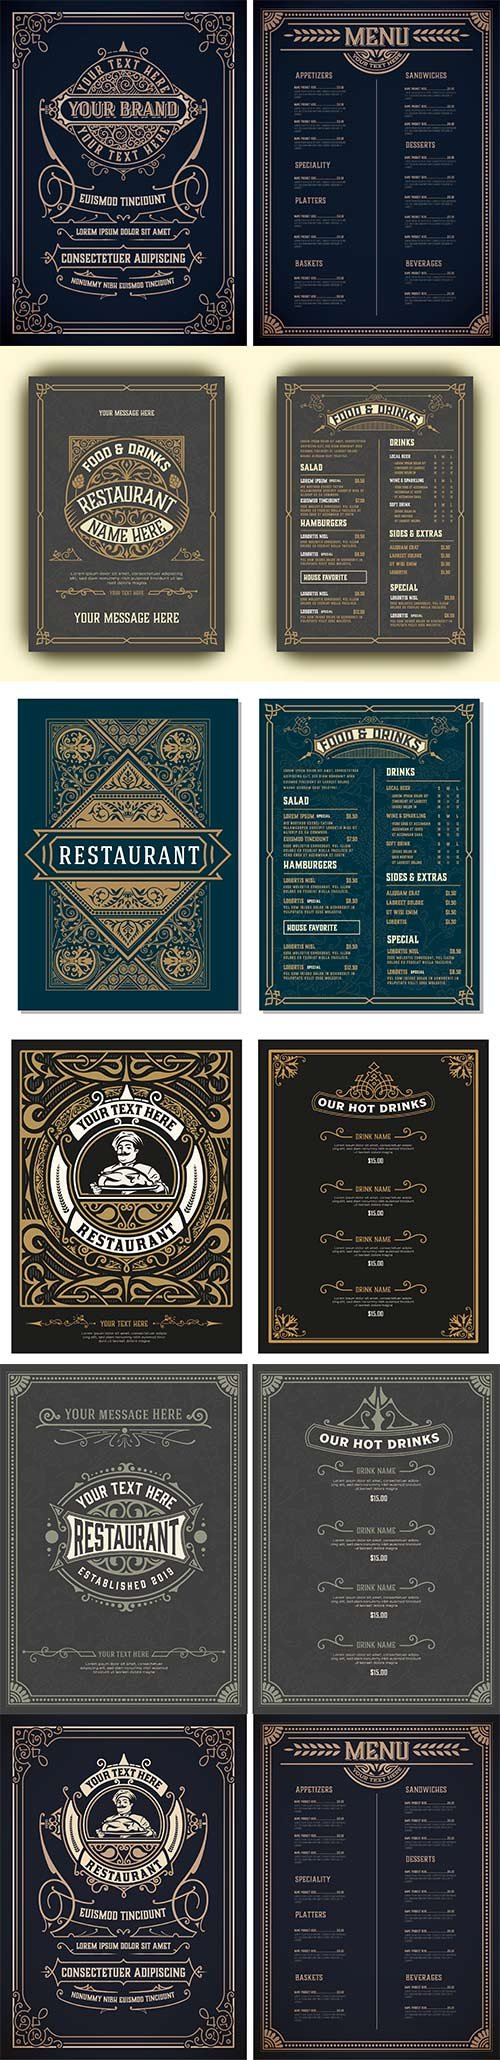 Vintage template for restaurant menu design with Chef